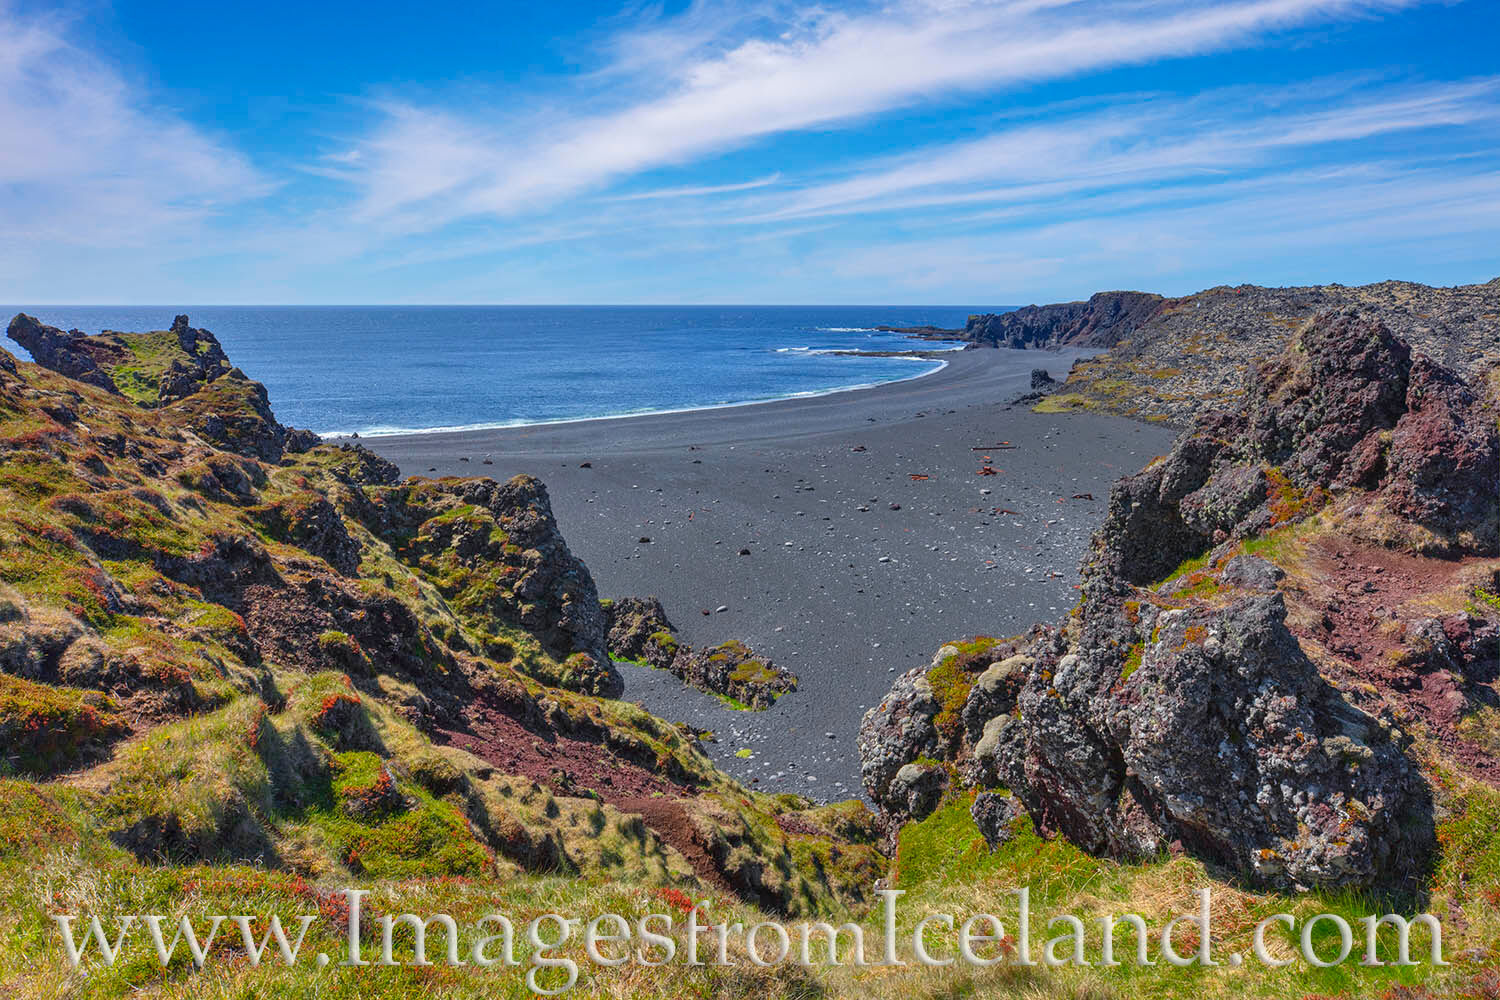 The black sands of Djúpalónssandur Beach along the coast of the Snæfellsnes Peninsula are beautiful to explore, washed-up...